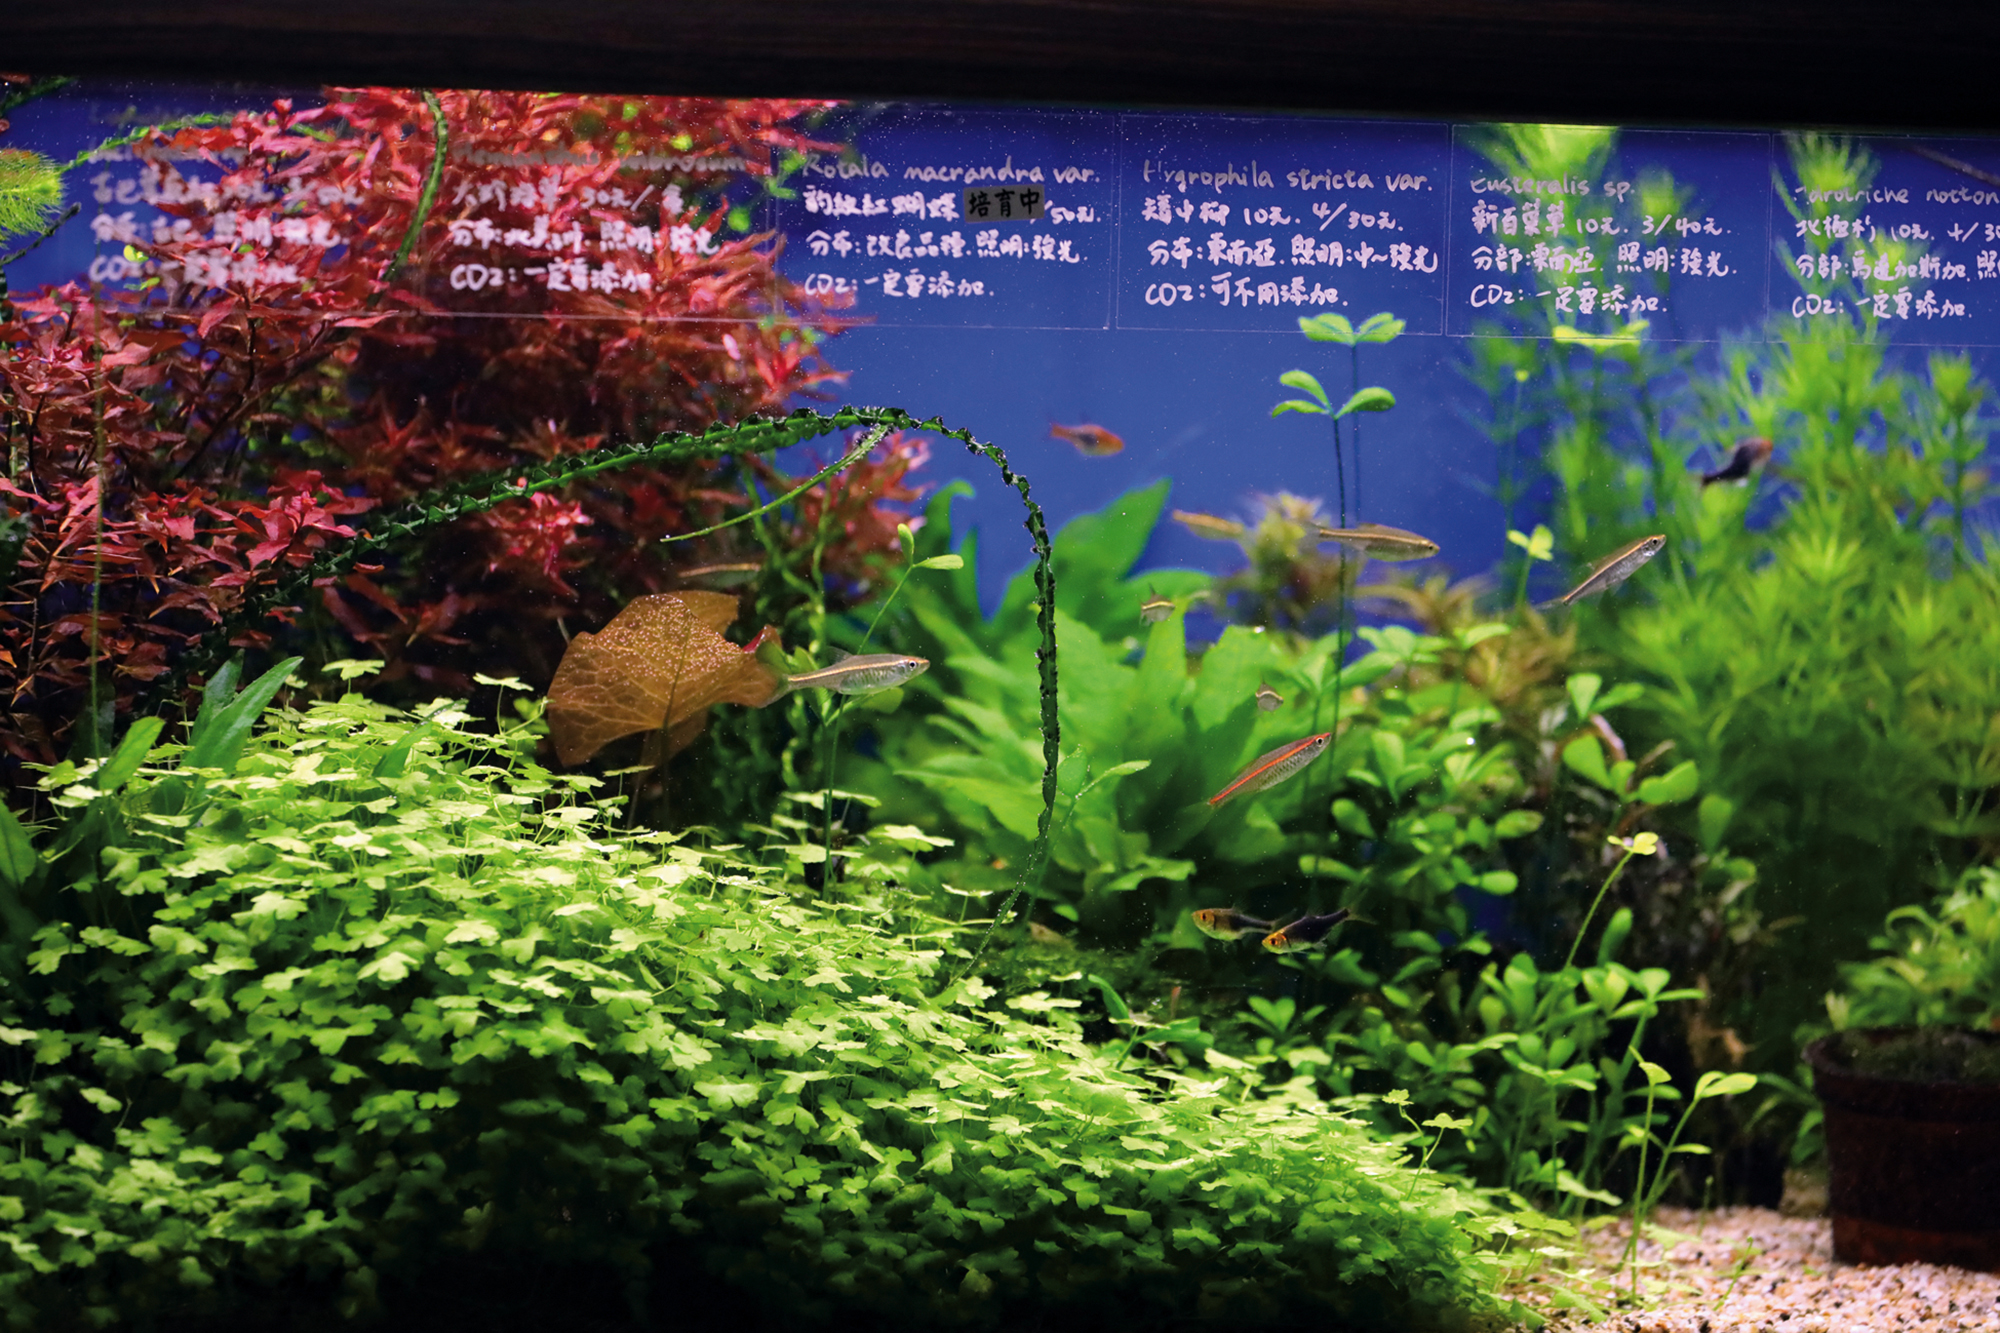 Different fish species and aquatic plants each require their own expert knowledge.  Jer Yuan Aqua Design owner Zhang Rongzhe suggests that shop owners should  develop their own areas of expertise if there is to be a healthy market.